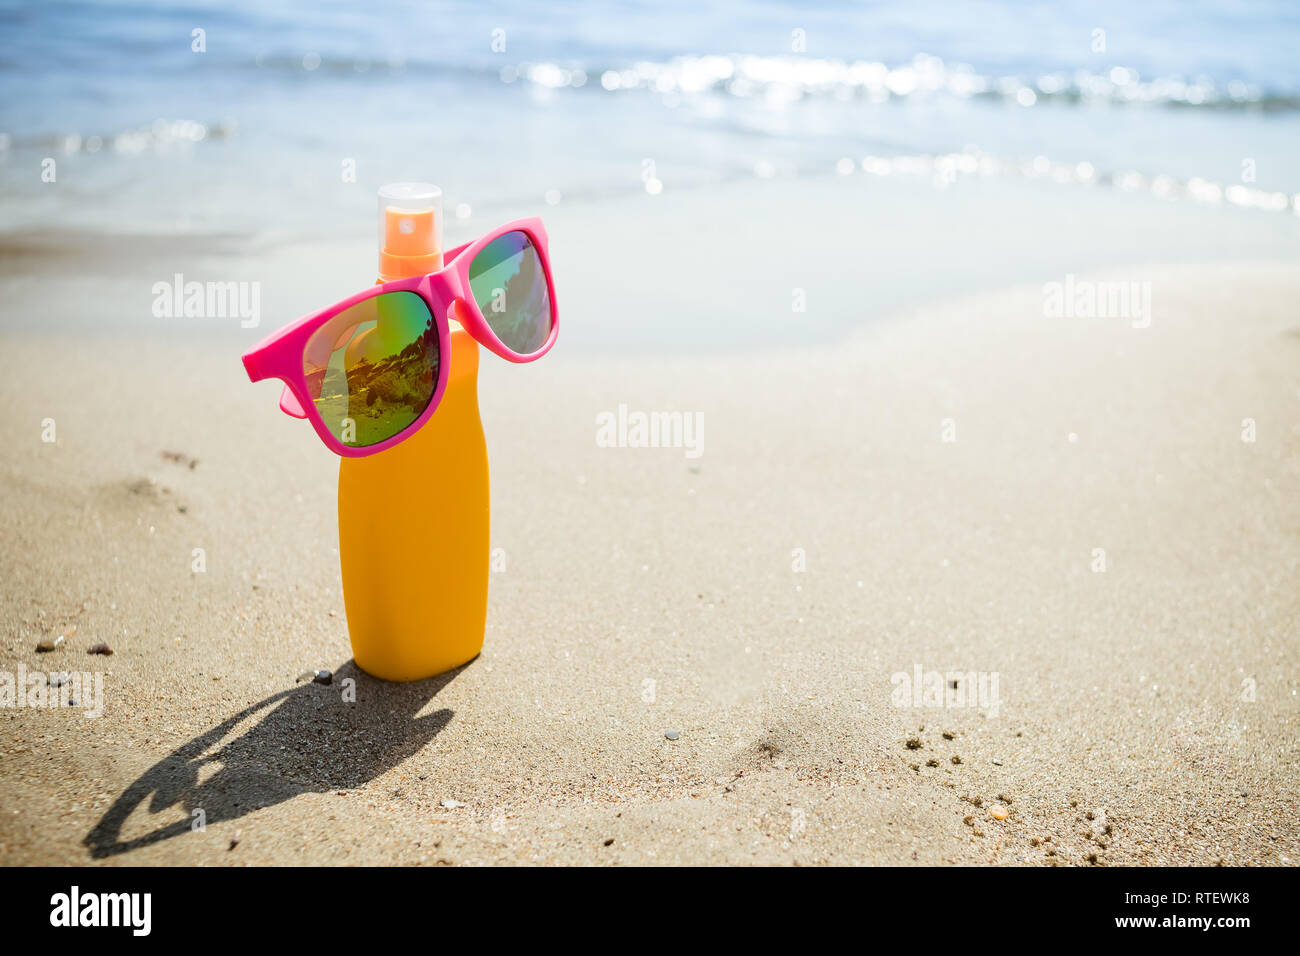 0ae3ae5d861 Various sunsreen products in the sand. cosmetic bottles for personal care  isolated on beach background